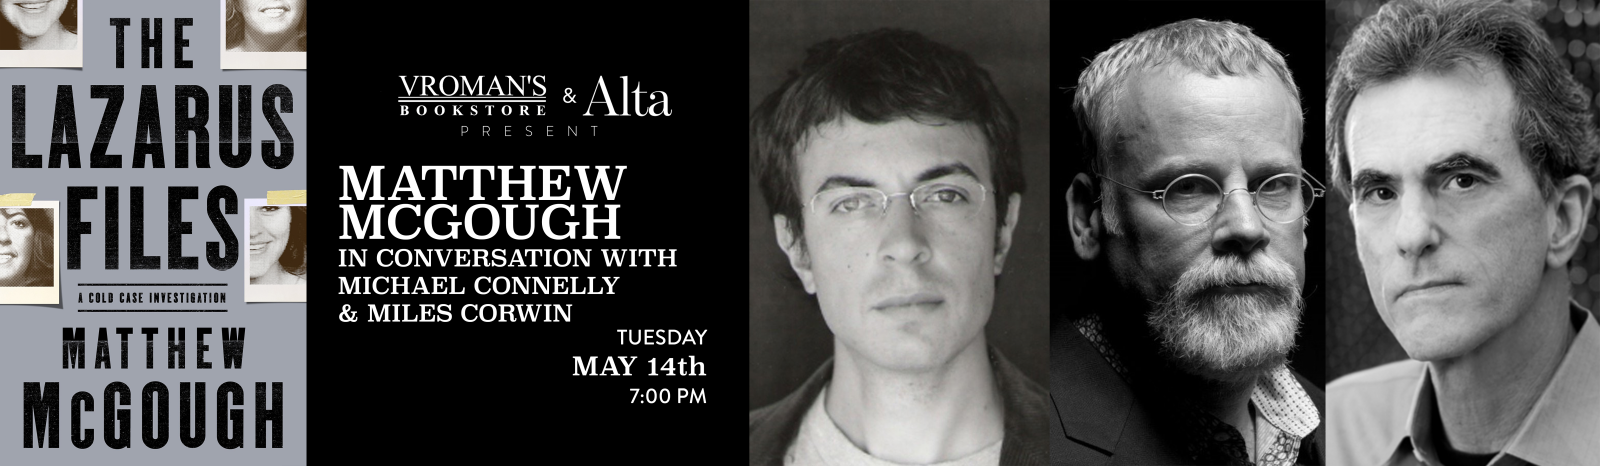 Matthew McGough, in conversation with Michael Connelly & Miles Corwin, Tuesday May 14th at 7pm